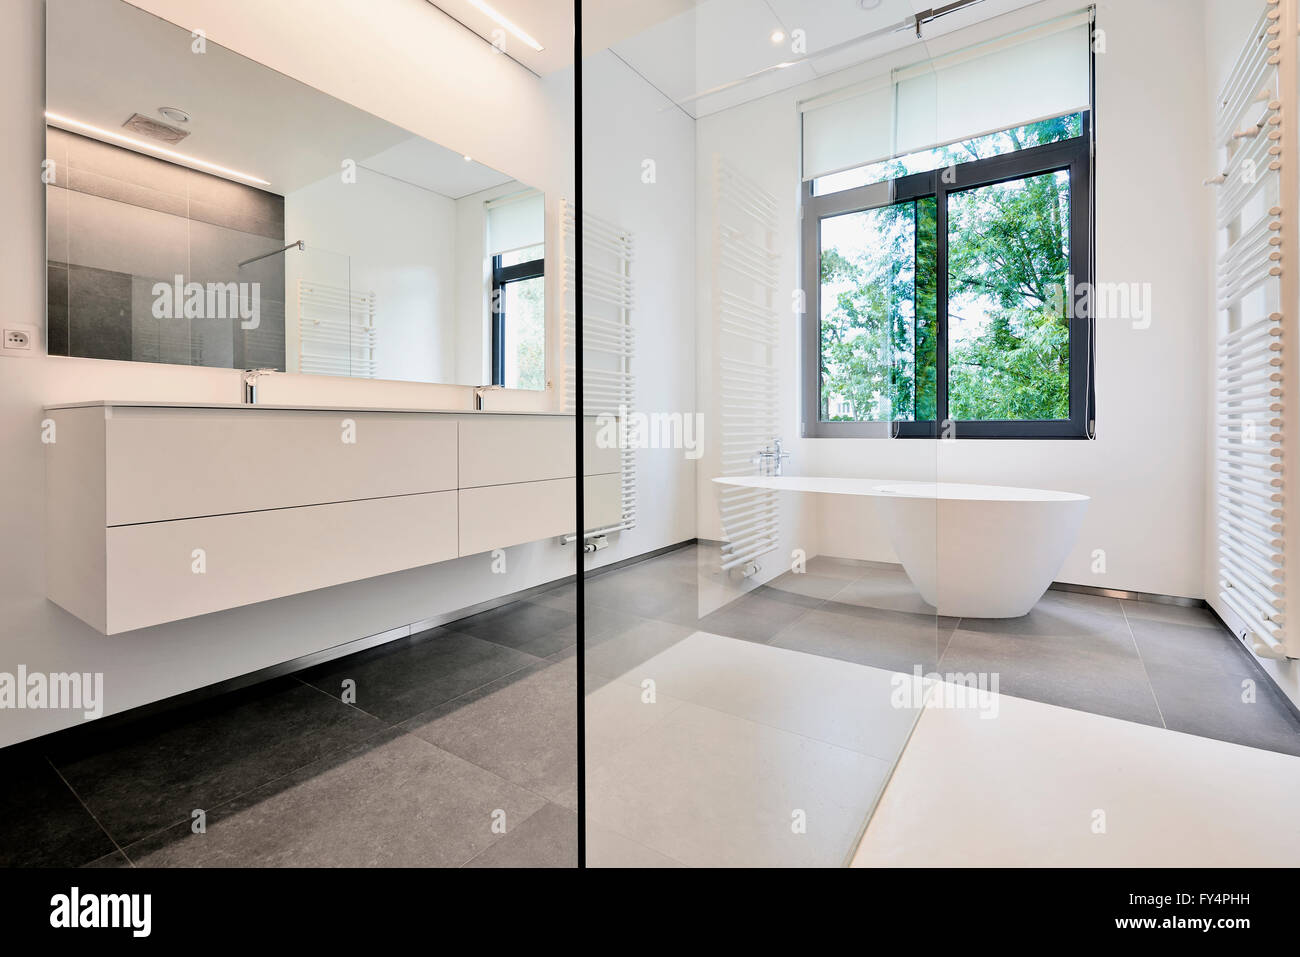 Bathtub in corian, Faucet and shower in tiled bathroom with windows ...